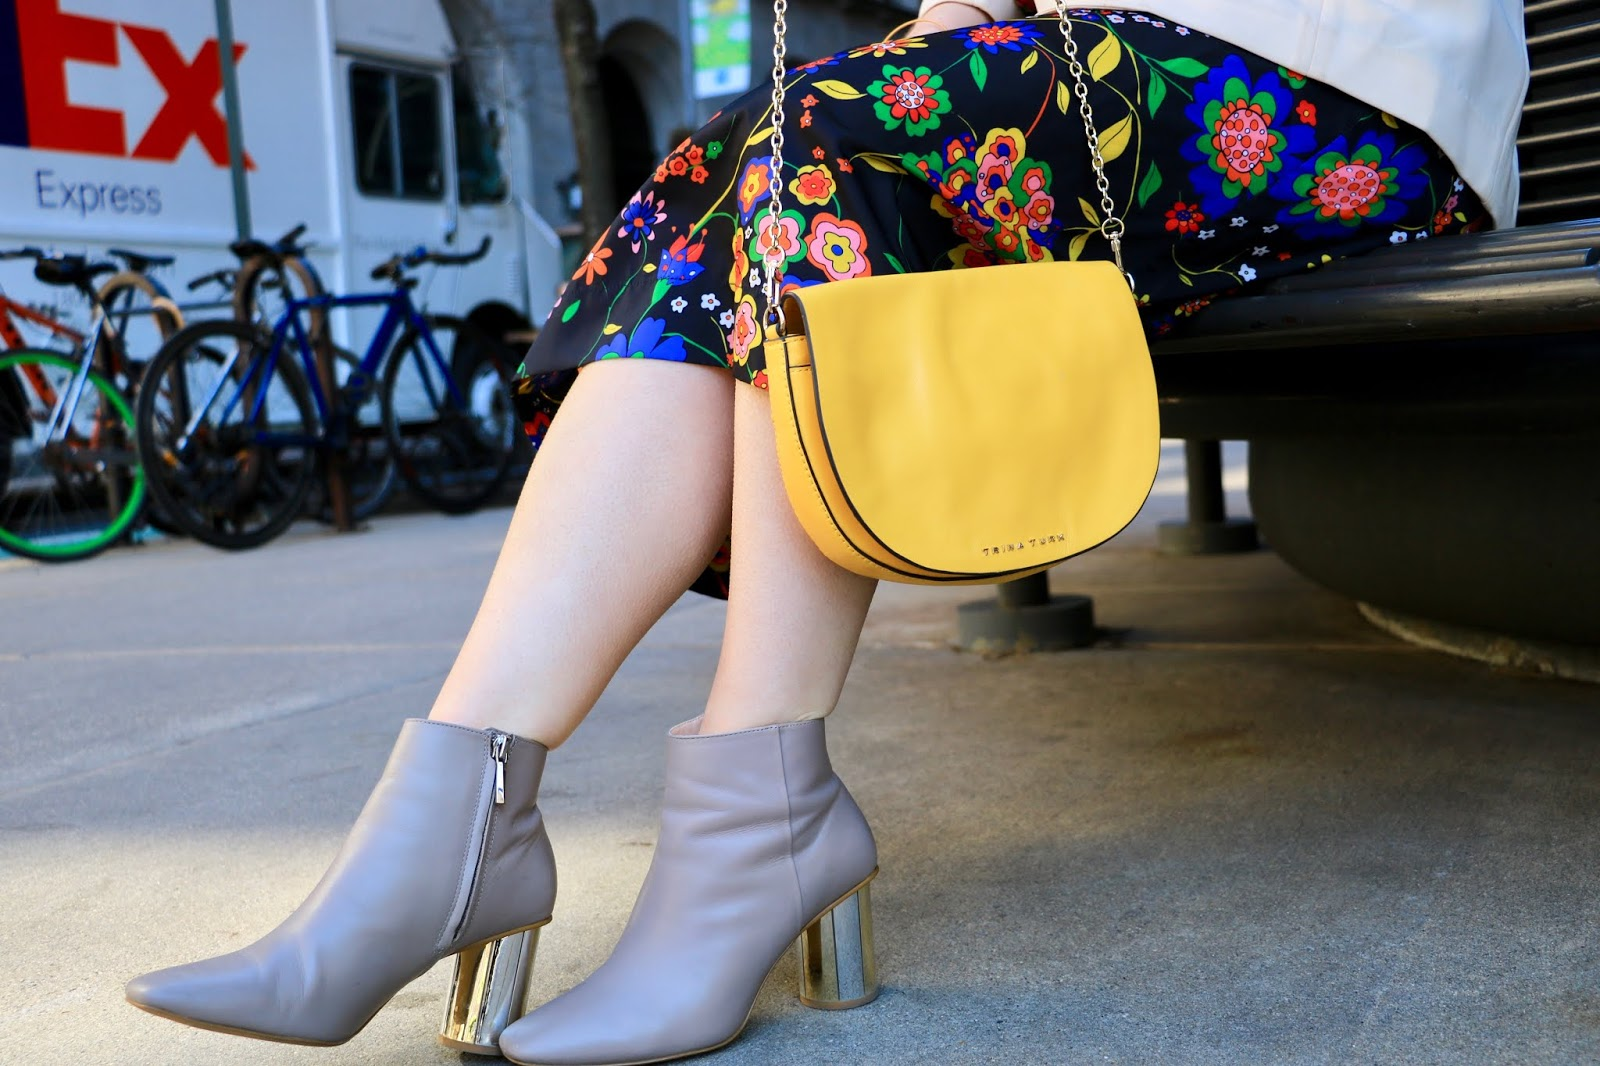 Nyc fashion blogger Kathleen Harper wearing nude booties with a metallic heel